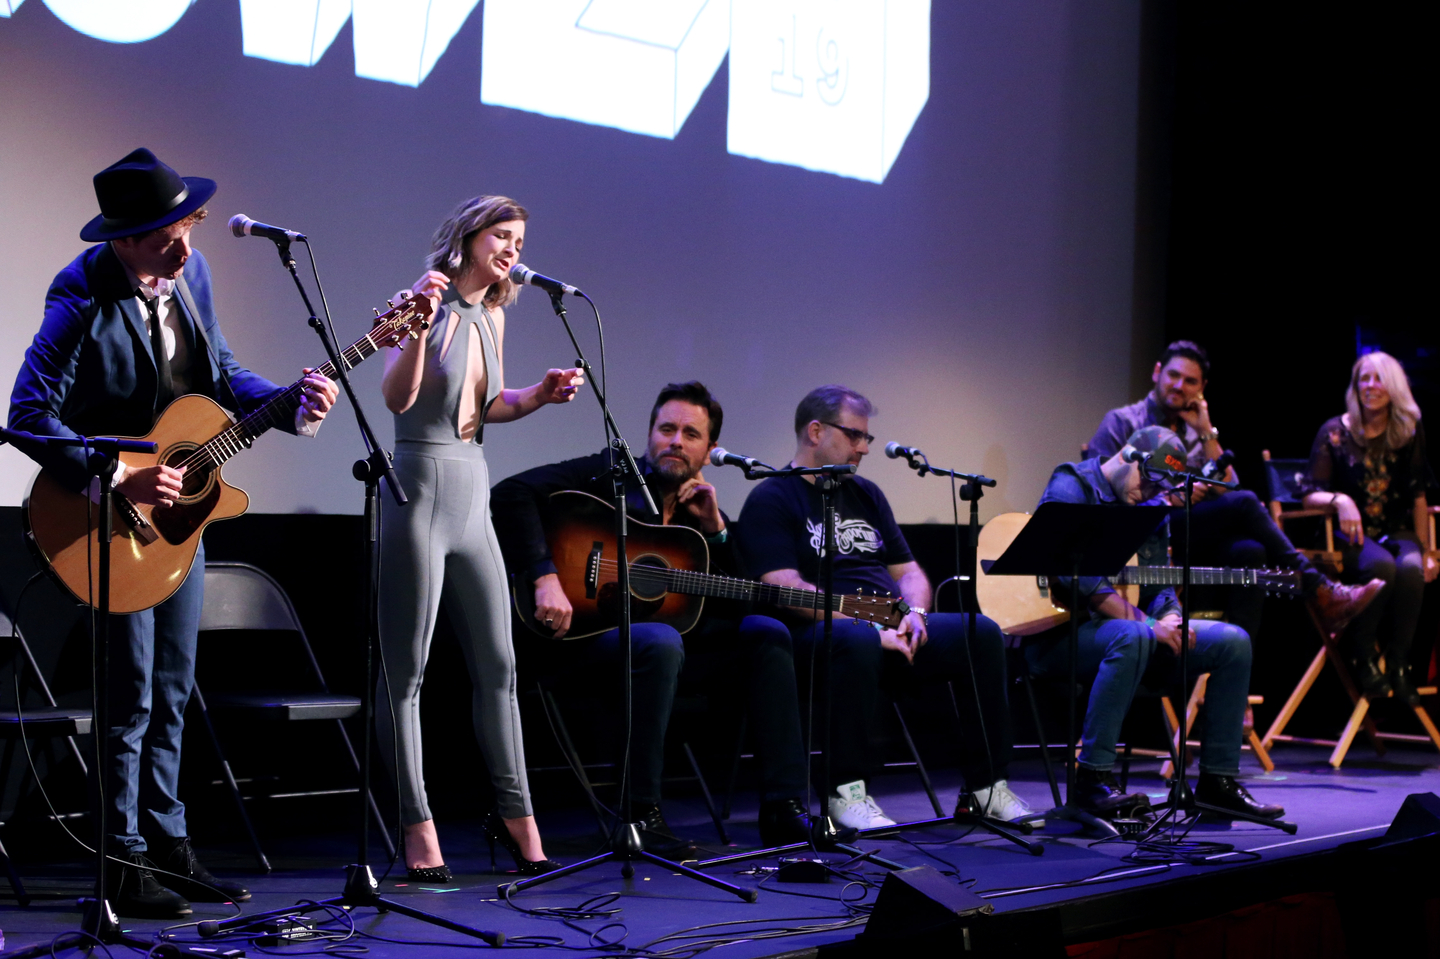 (L-R) Justin Davis and Sarah Zimmermann of Striking Matches, Charles Esten, Barry Dean, Luke Laird, Brian LoSchiavo, and Erika Wollam Nichols perform onstage at the Bluebird premiere the Paramount Theater.